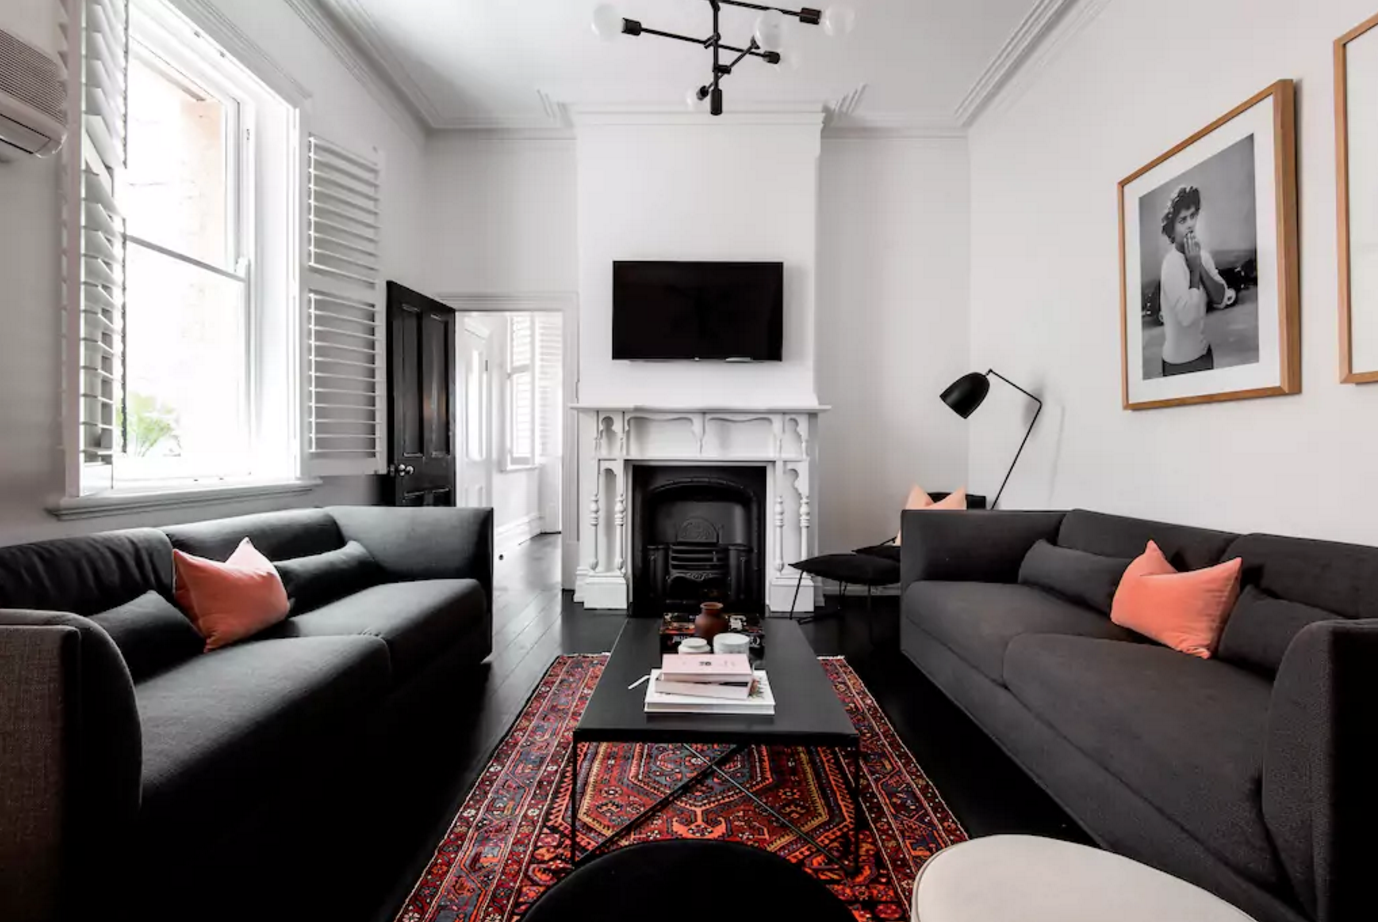 The 6 Best Airbnbs in Perth and Freemantle